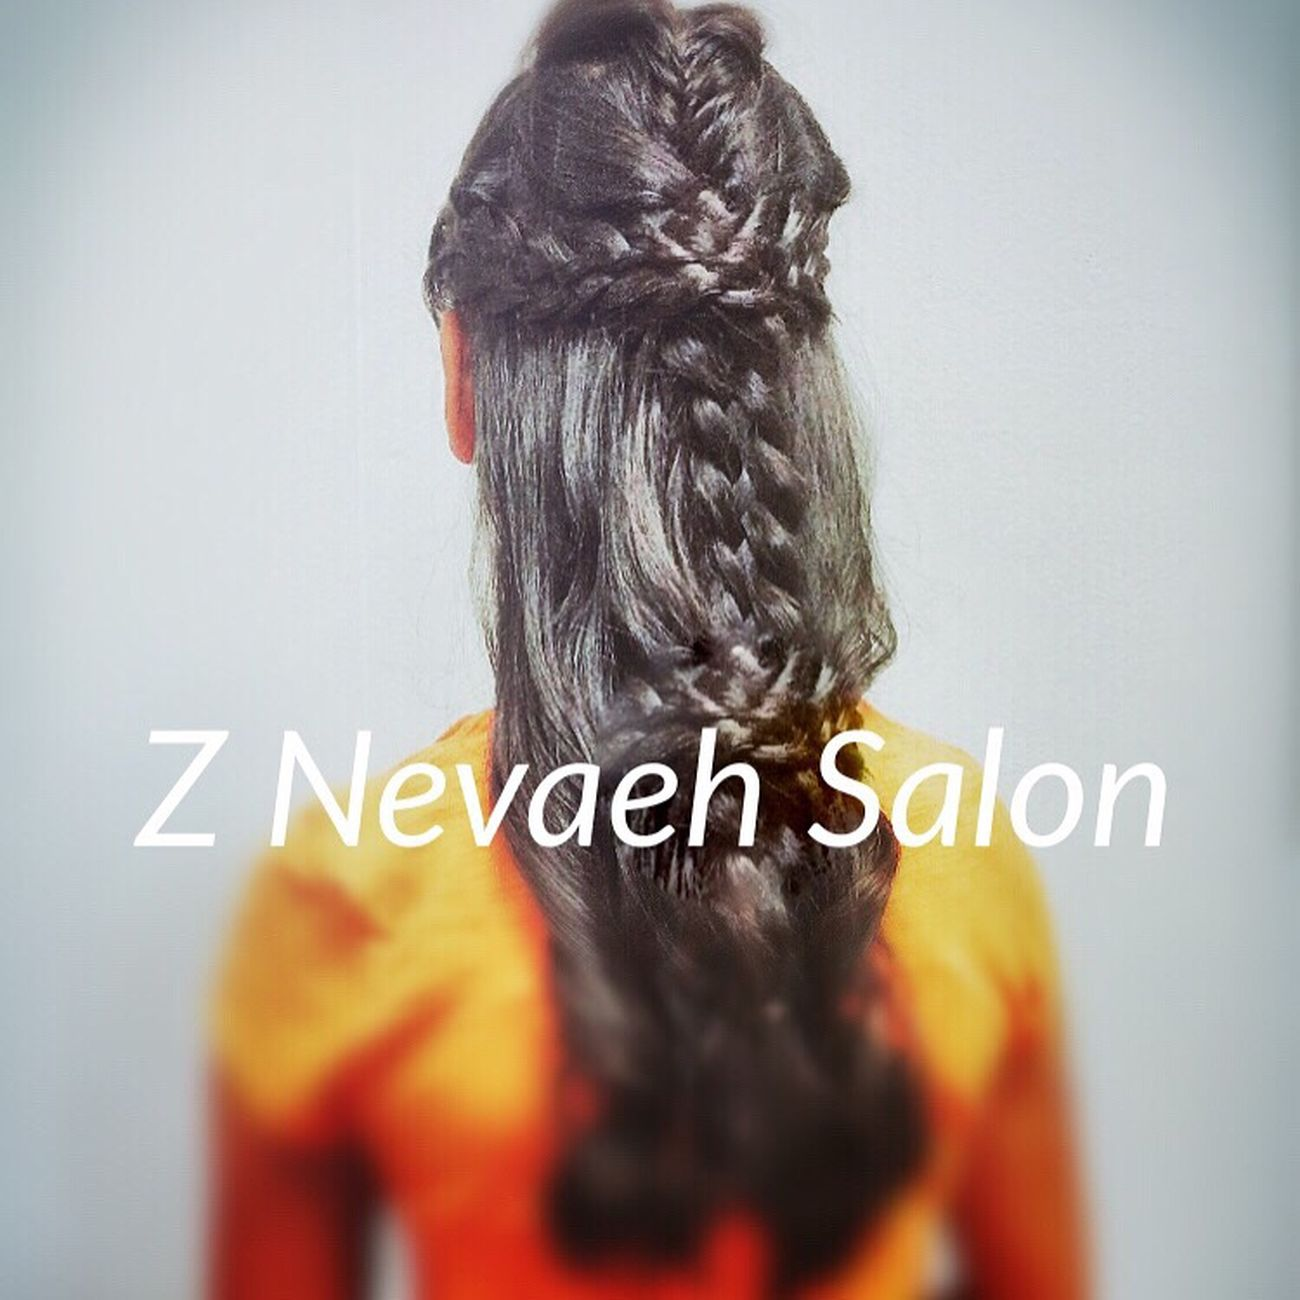 Four Strand Braids @znevaehsalon Check This Out Fashion #style #stylish #love #TagsForLikes #me #cute #photooftheday #nails #hair #beauty #beautiful #instagood #instafashion # Longhair Knoxville Salon Americansalon Hair Hairstyle Teamznevaeh @znevaehsalon Fashion Hair Glamstyle Eye4photography # Photooftheday Beauty Launchpad BehindTheChair Modernsalon L'Oreal Professionnel Z Nevaeh Salon Braids Fourstrandbraid  Fishtail Braid